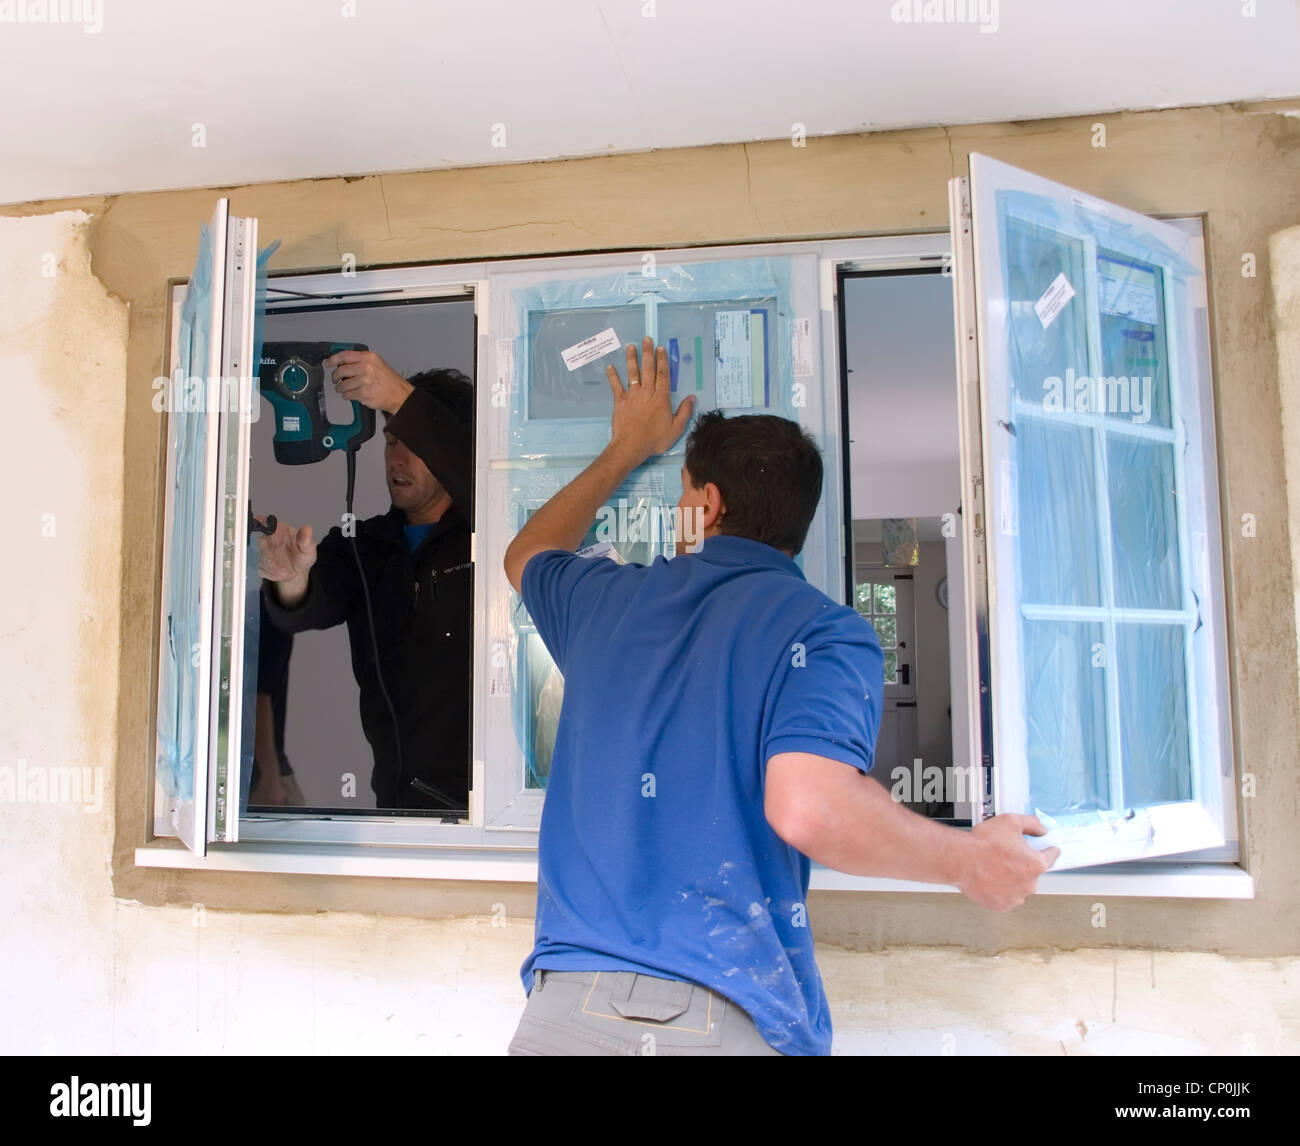 Installing A rated energy efficient replacement double glazed windows on a house extension. - Stock Image